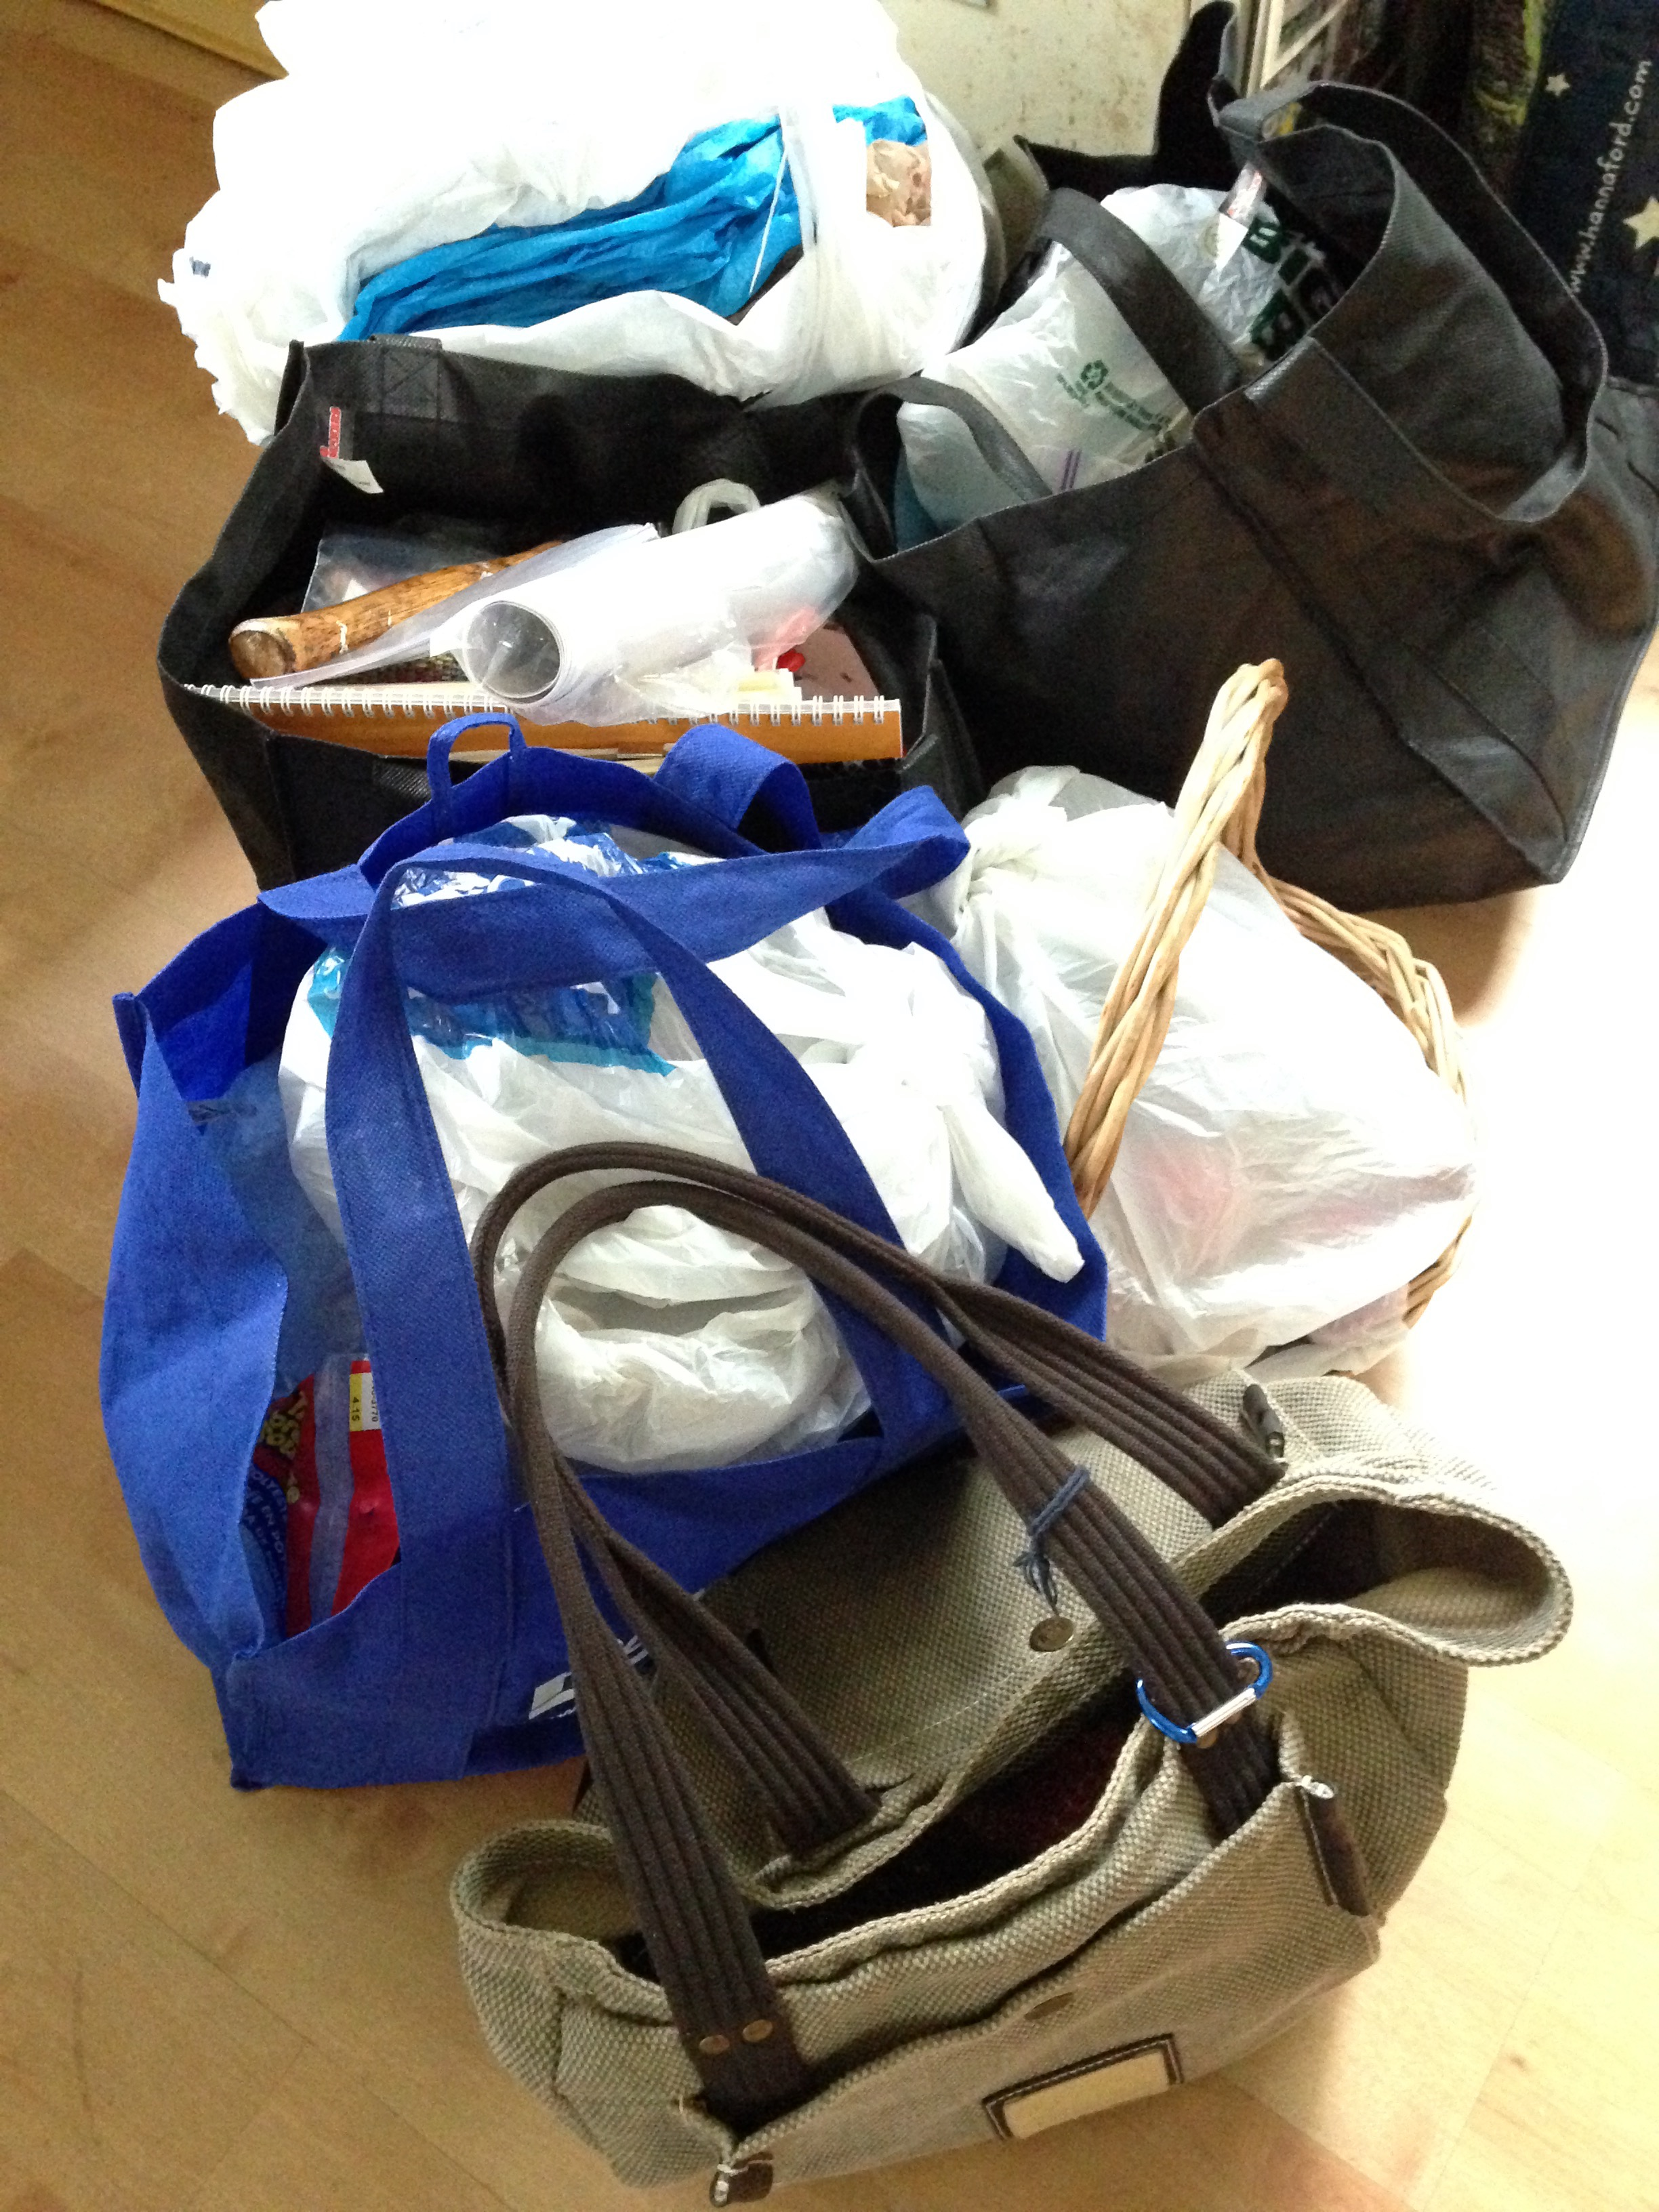 Bags full of temari, handouts, knitting,packaging, bowls and baskets for display, miscellaneous office supplies, knitting patterns, the kitchen sink...